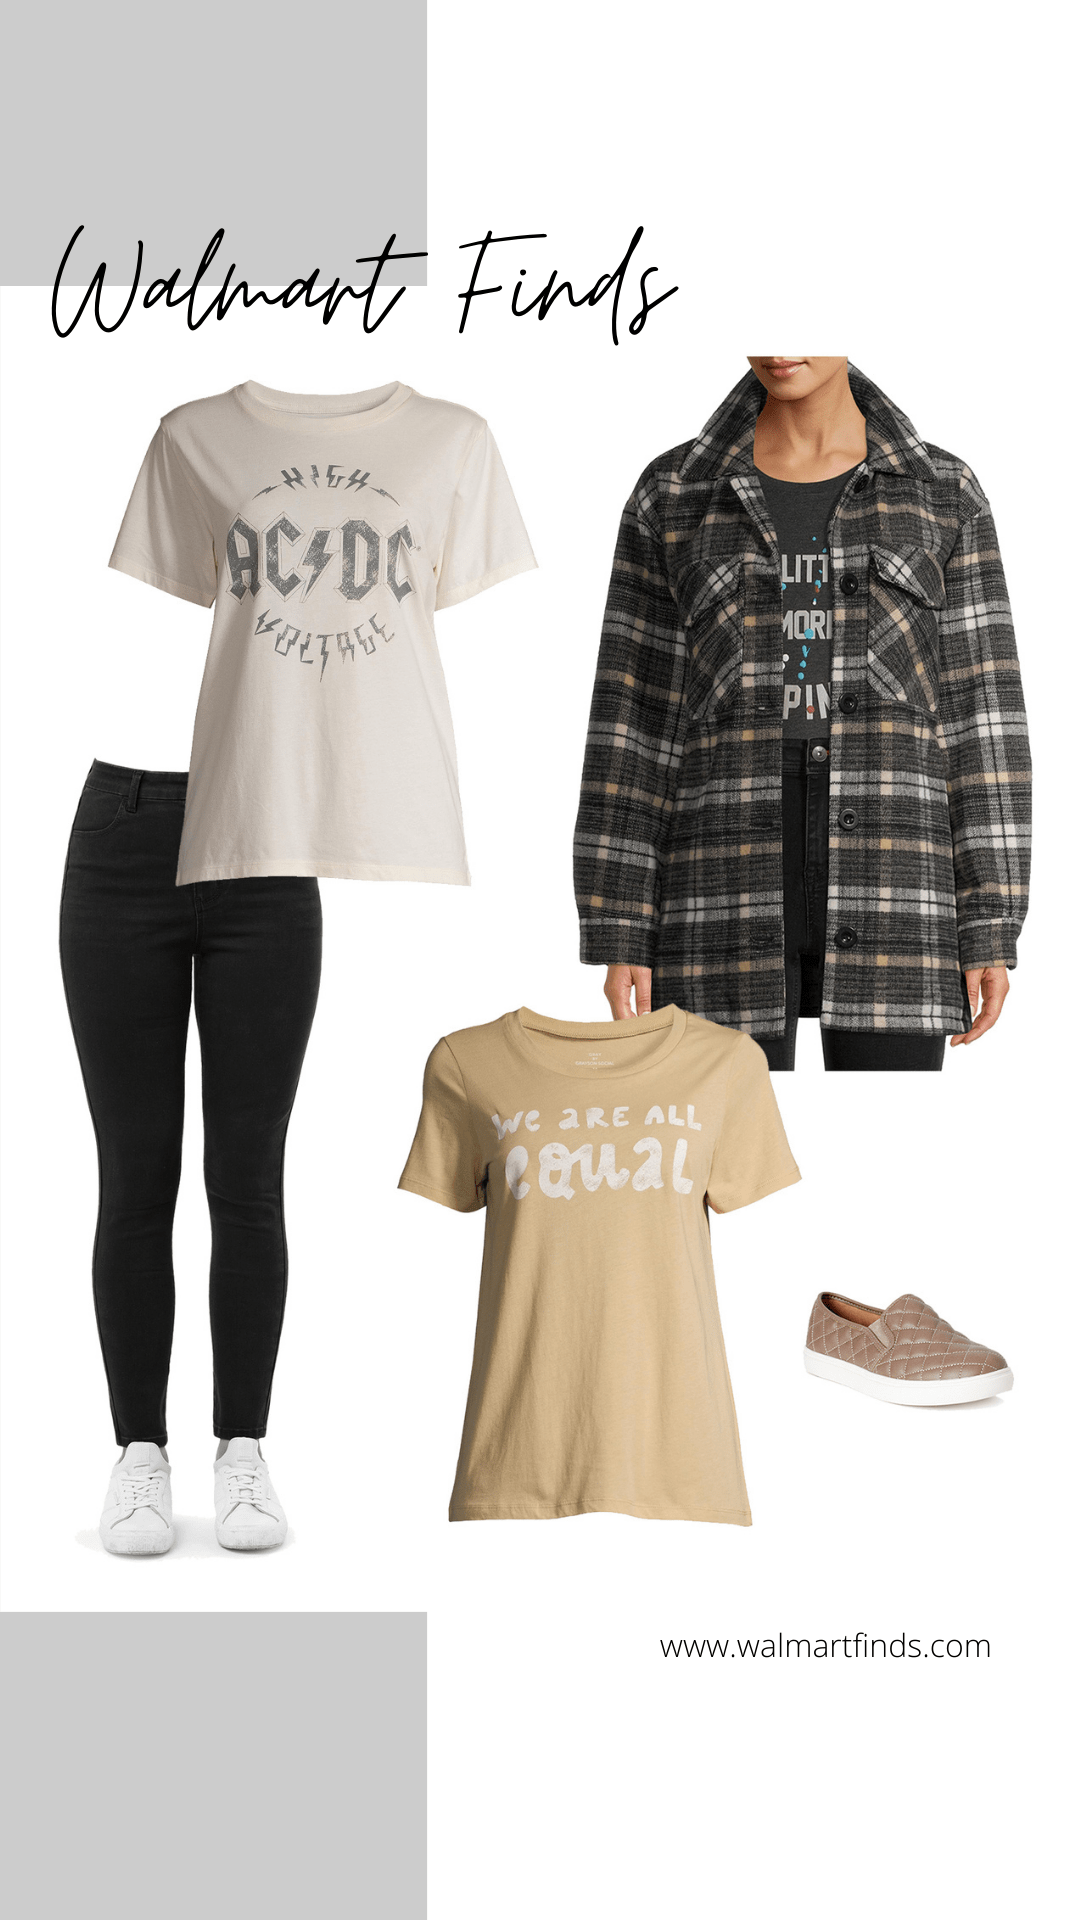 Oversized Shirt Jacket and New Graphic Tees